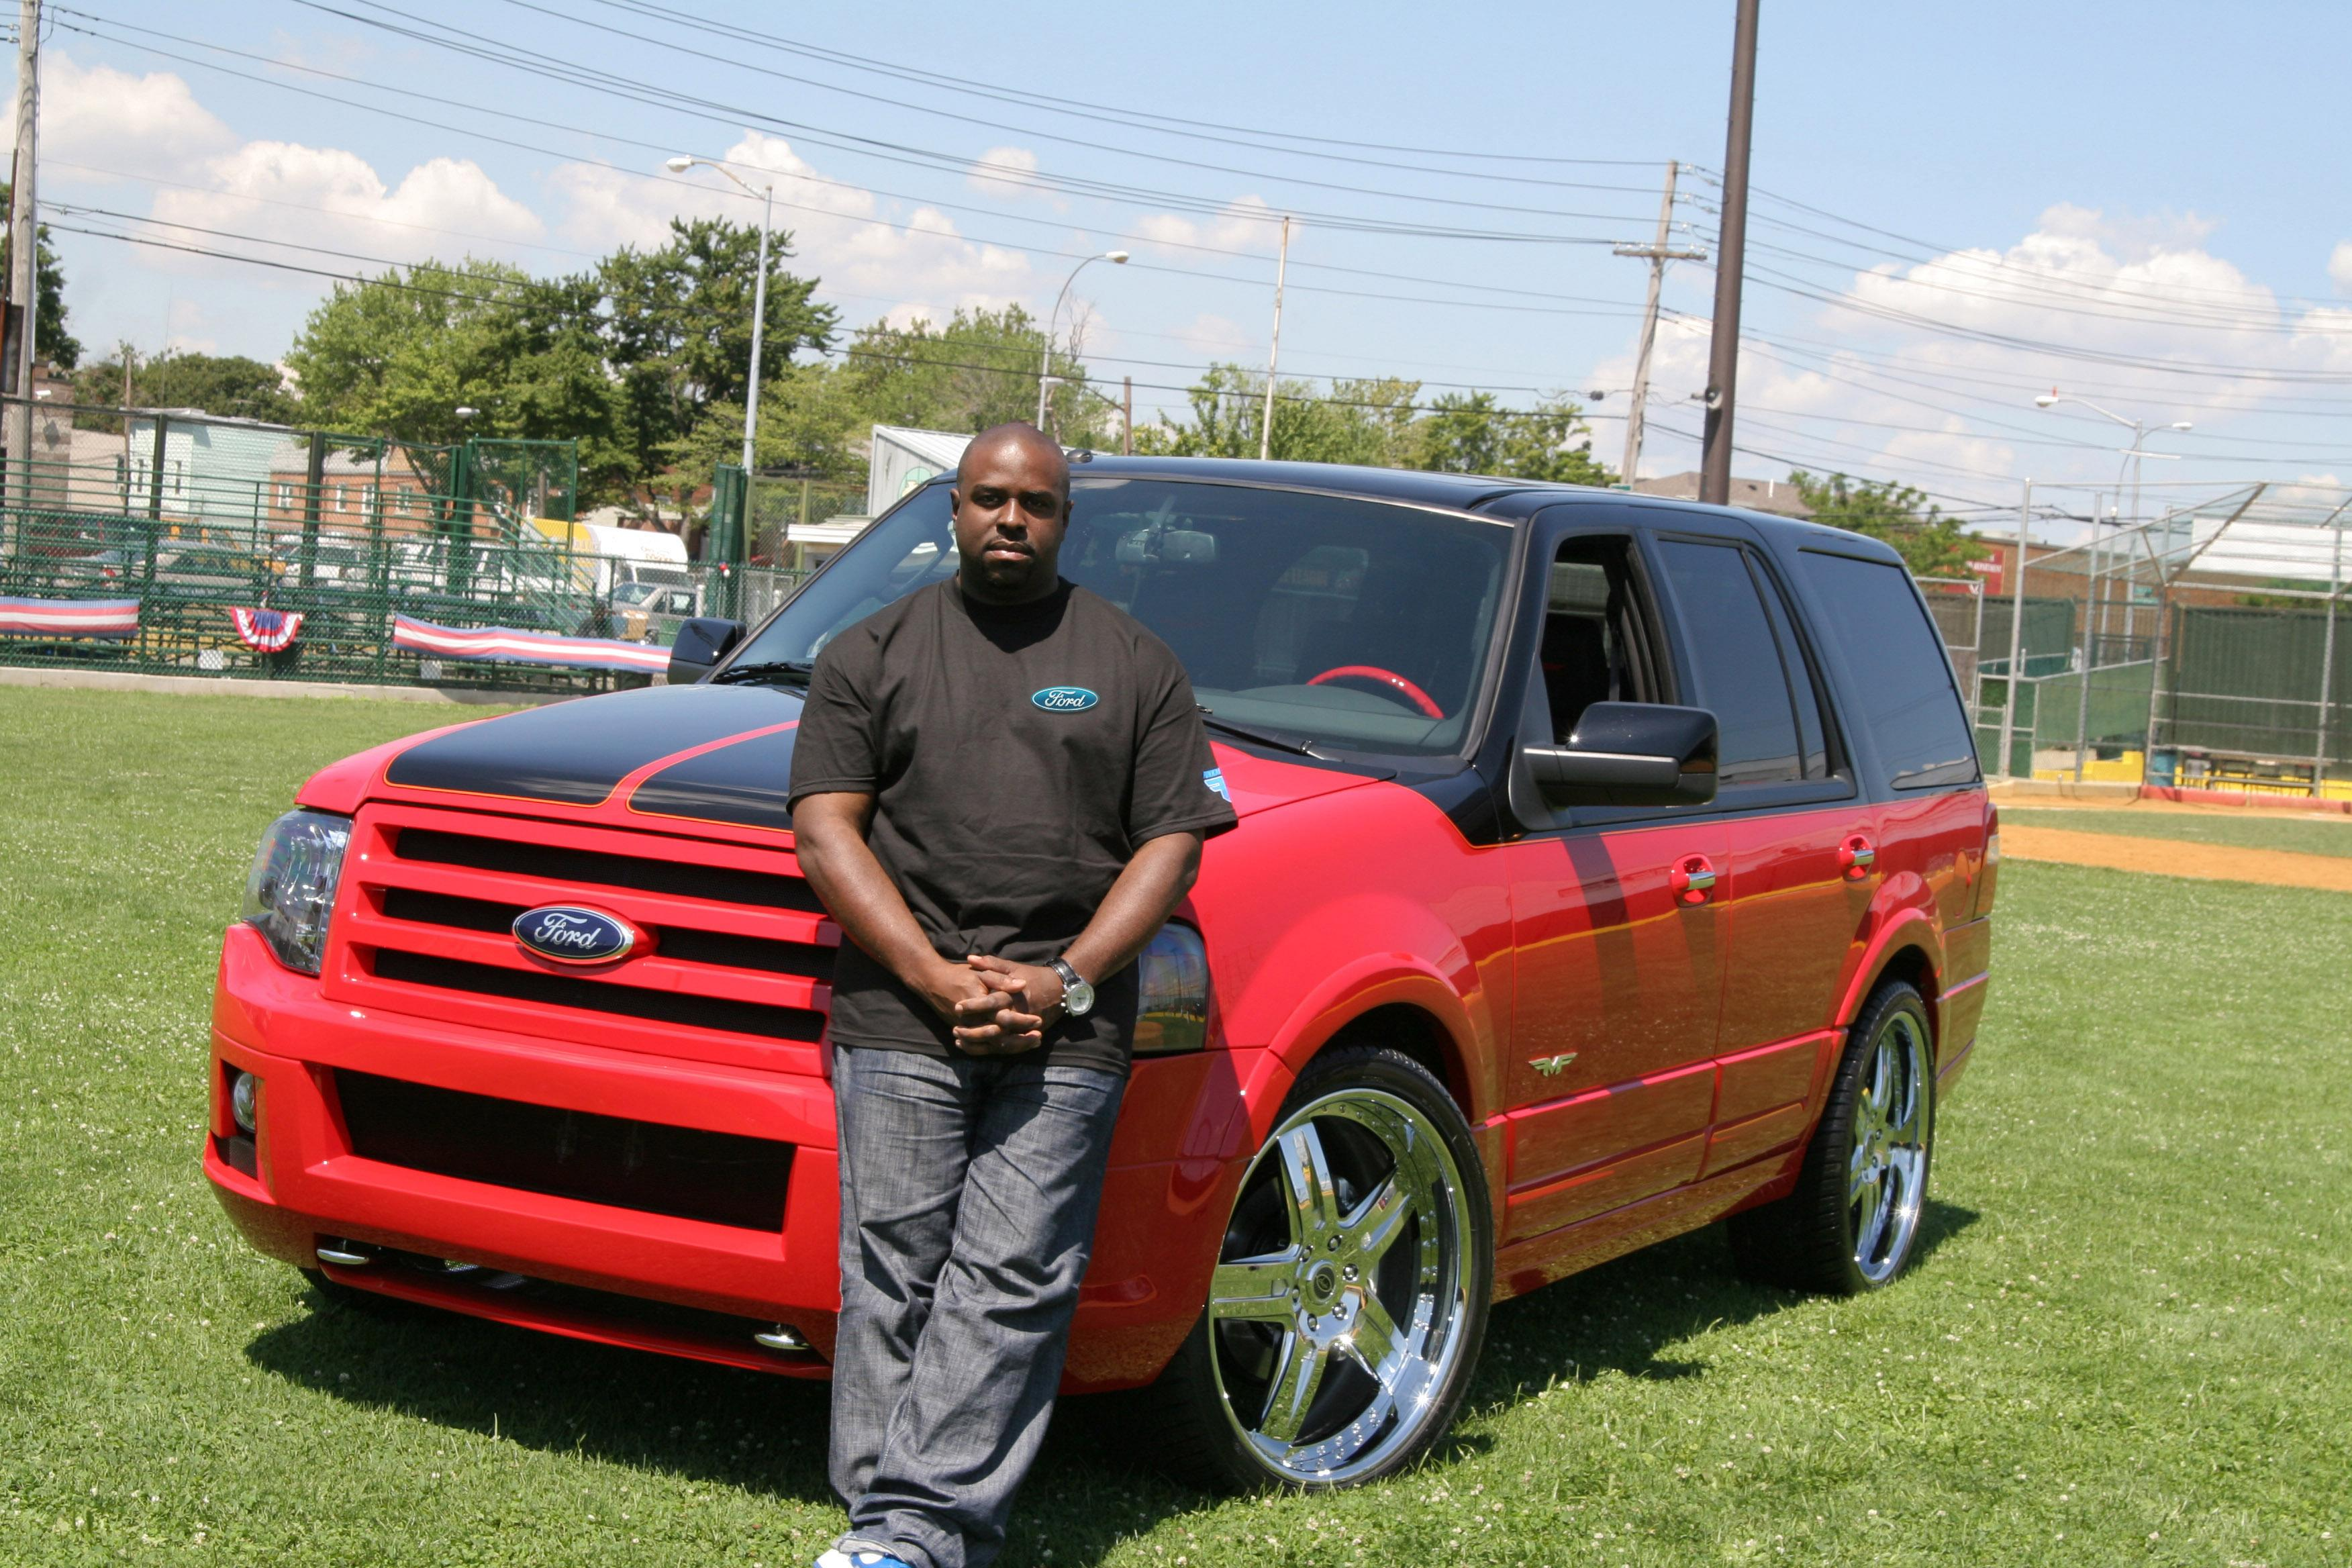 2007 ford expedition concept by funkmaster flex review. Black Bedroom Furniture Sets. Home Design Ideas